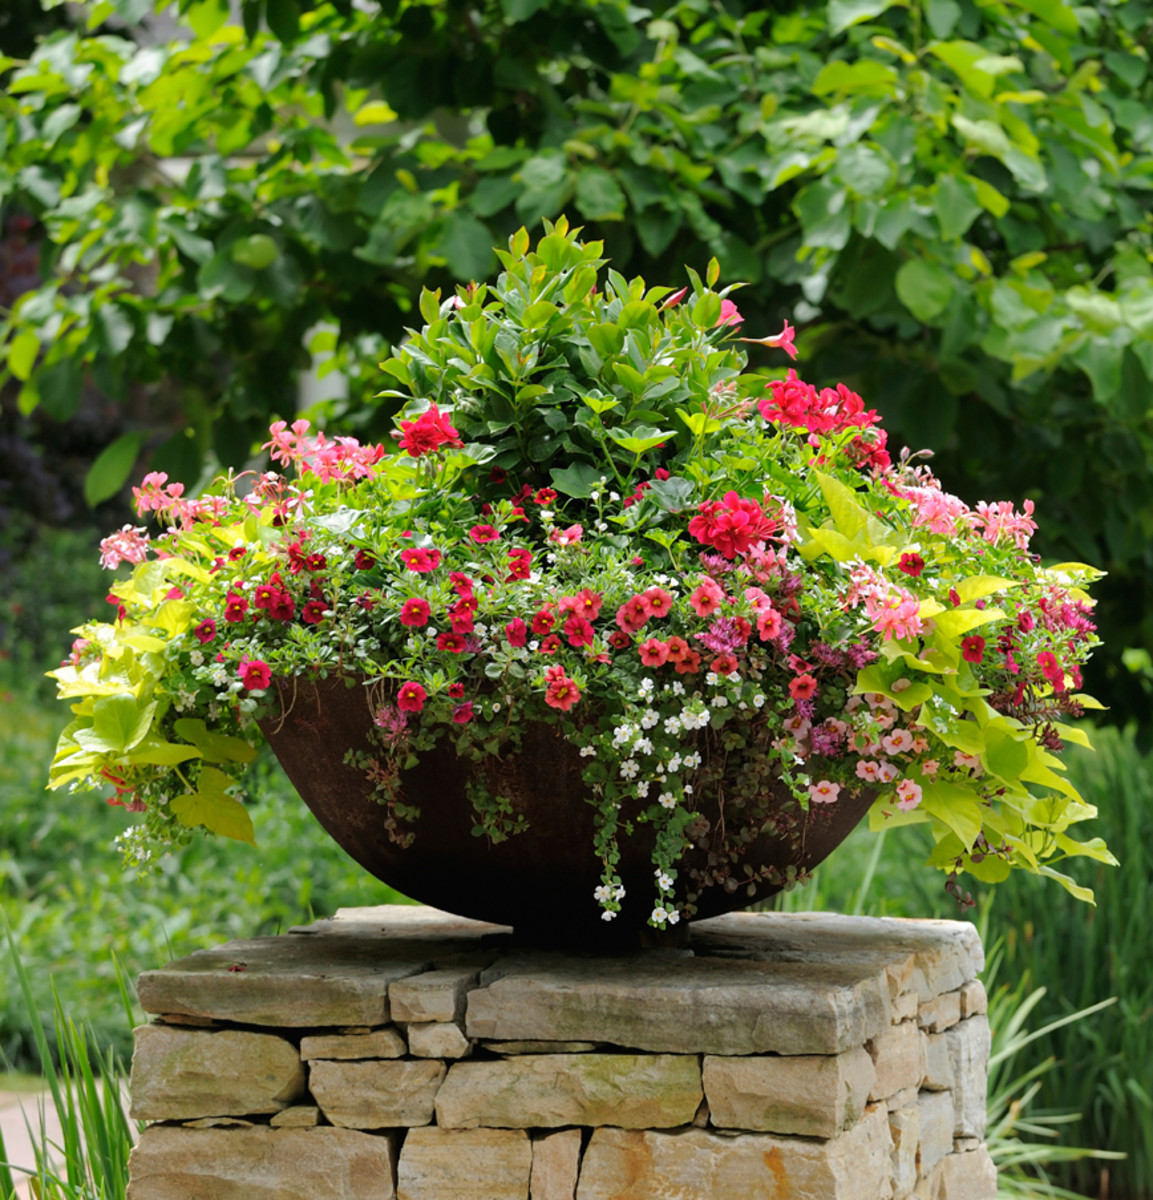 Container Garden Ideas: Container Gardening Ideas & How-Tos